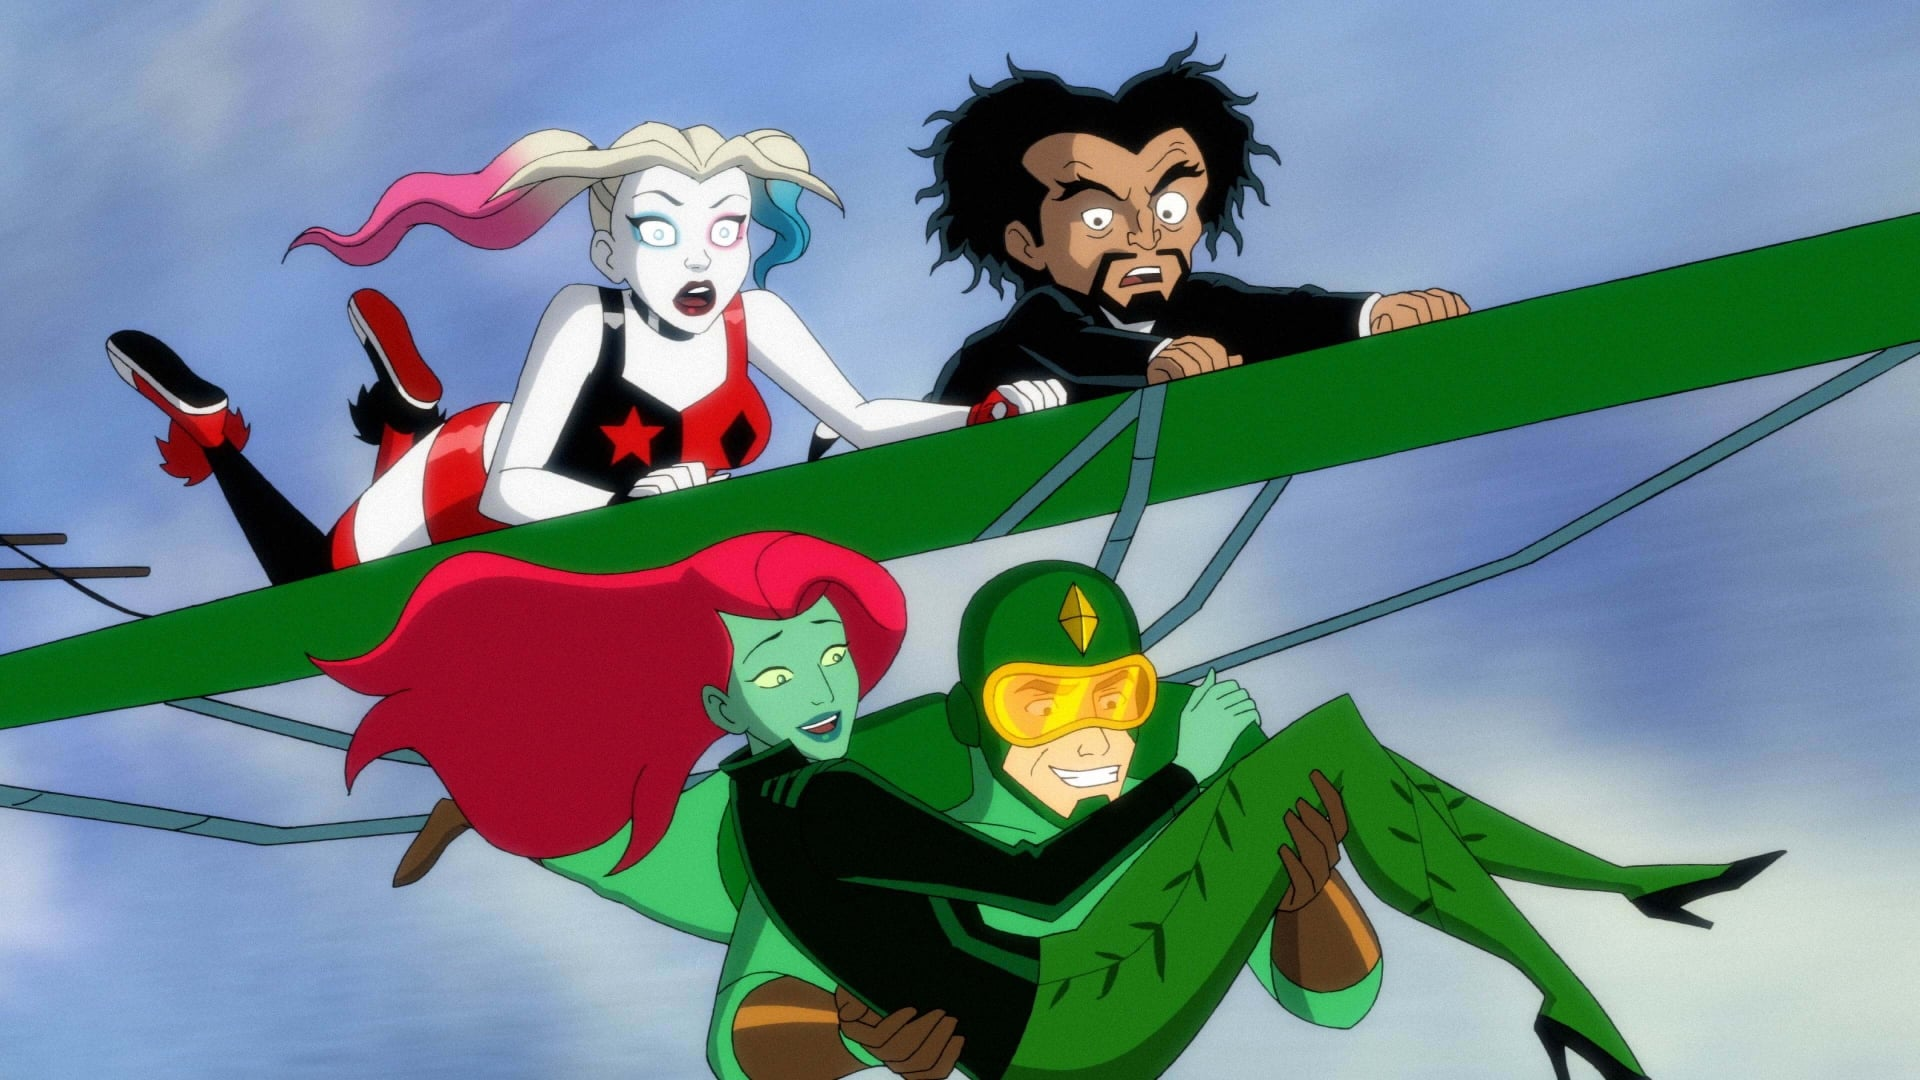 Harley Quinn - Season 1 Episode 12 : Devil's Snare